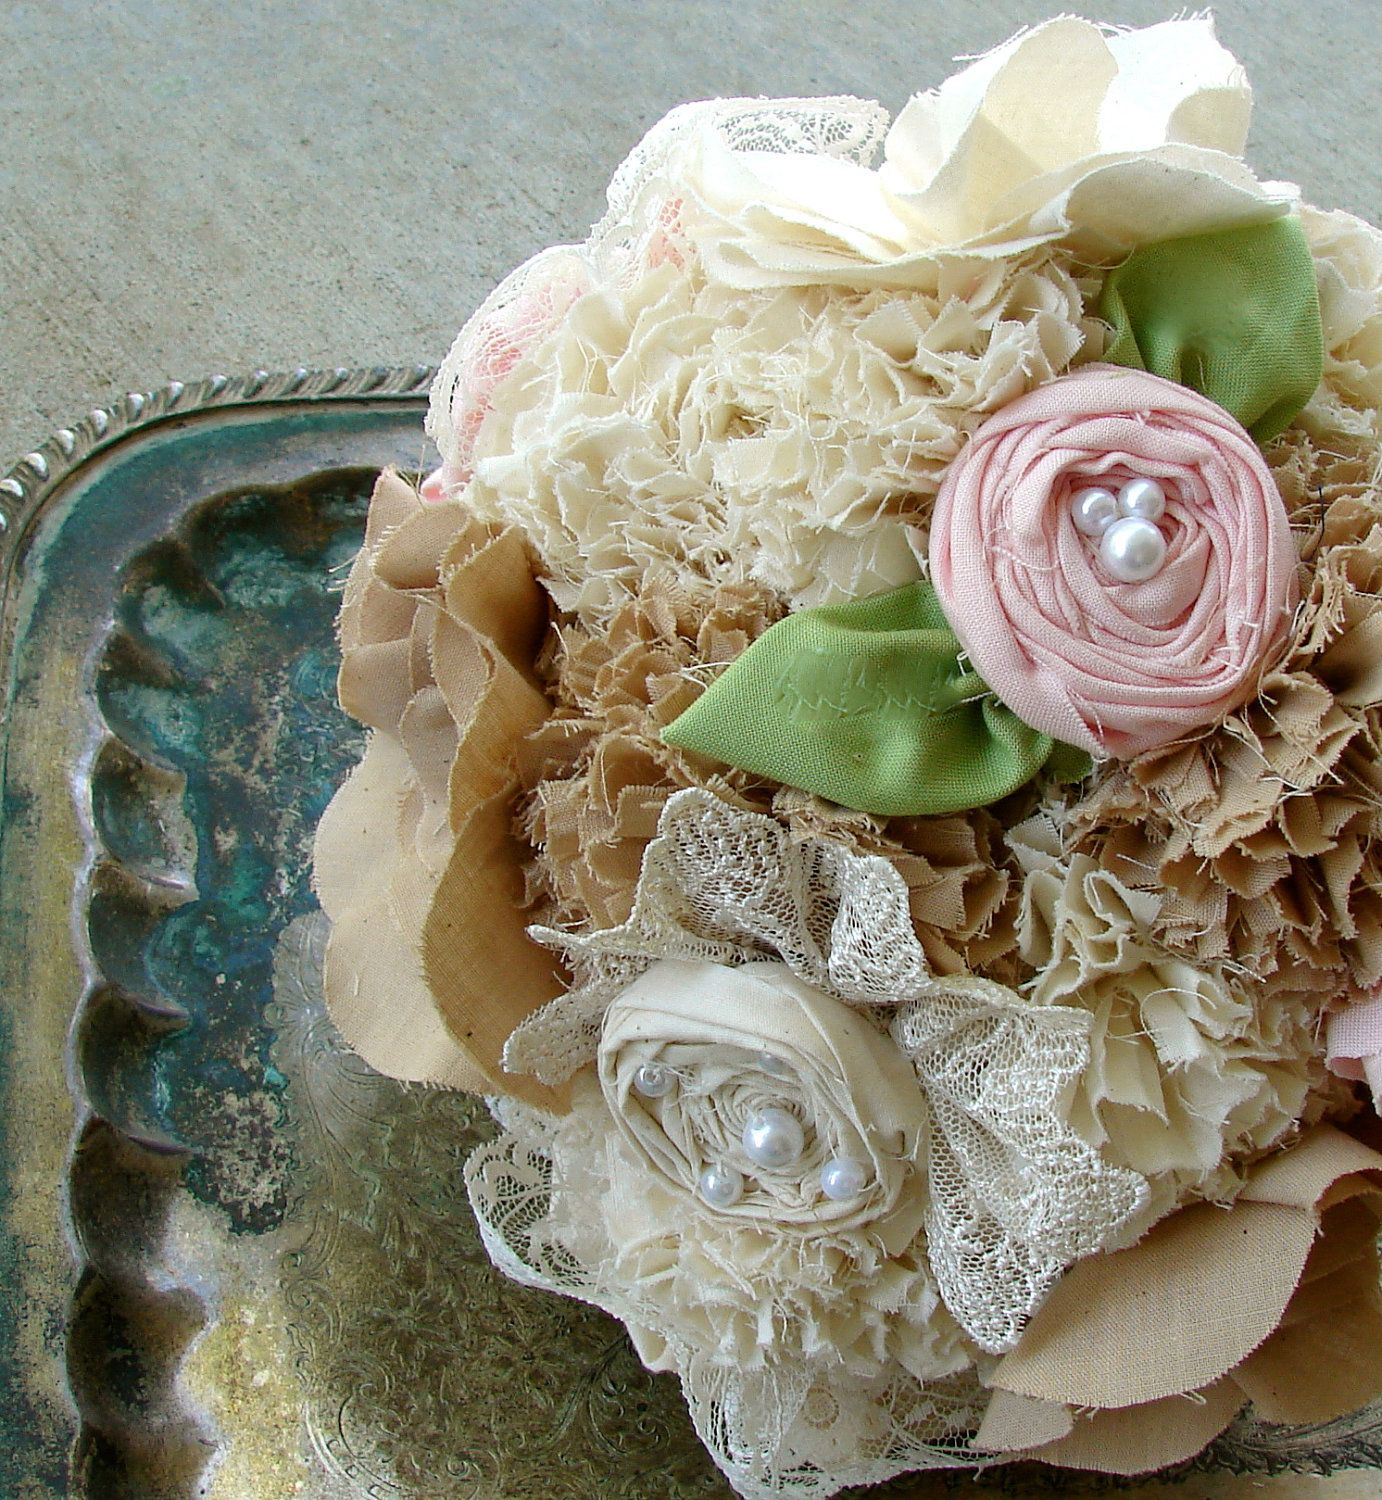 Handmade Rustic Chic Bridal Bouquet Weddings Vintage Wedding